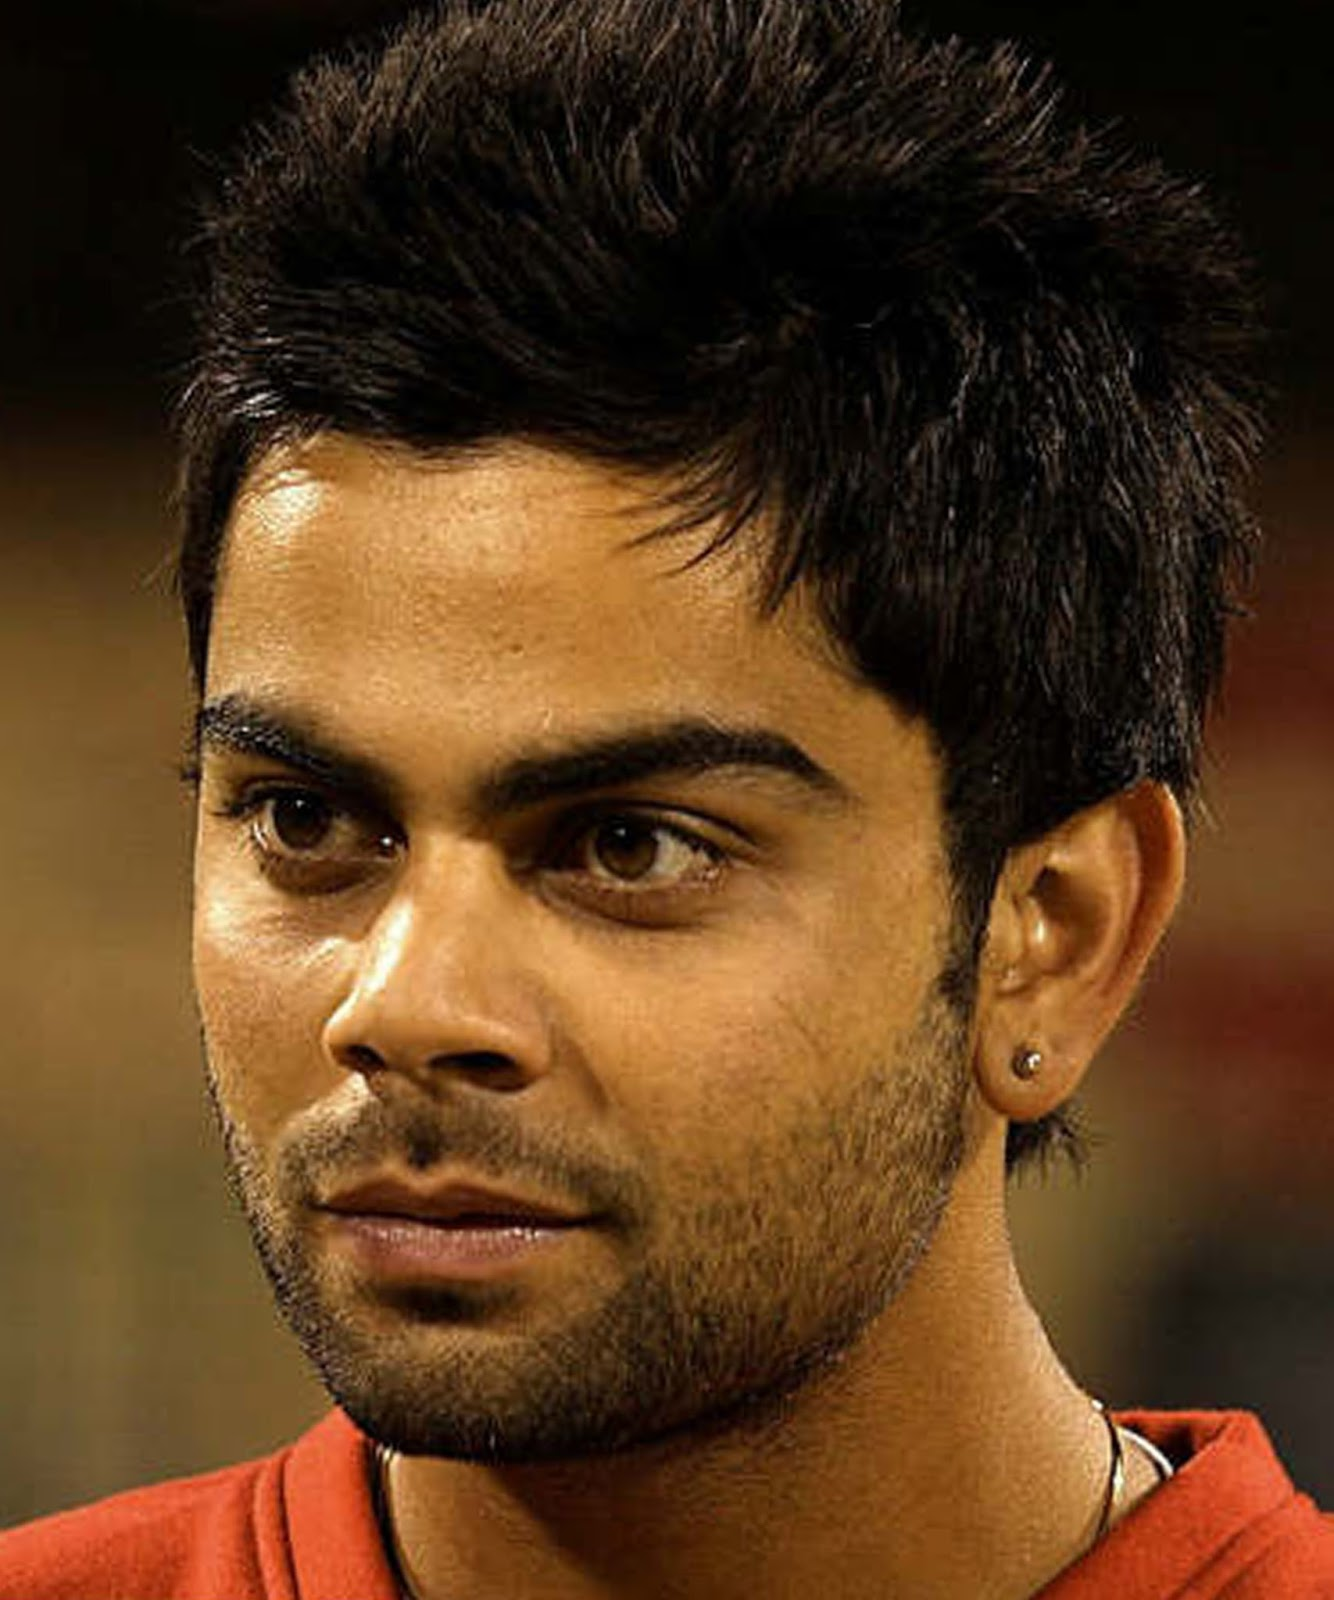 Top 6 Hairstyle Inspired By Virat Kohli 2016 Hairstyles Spot